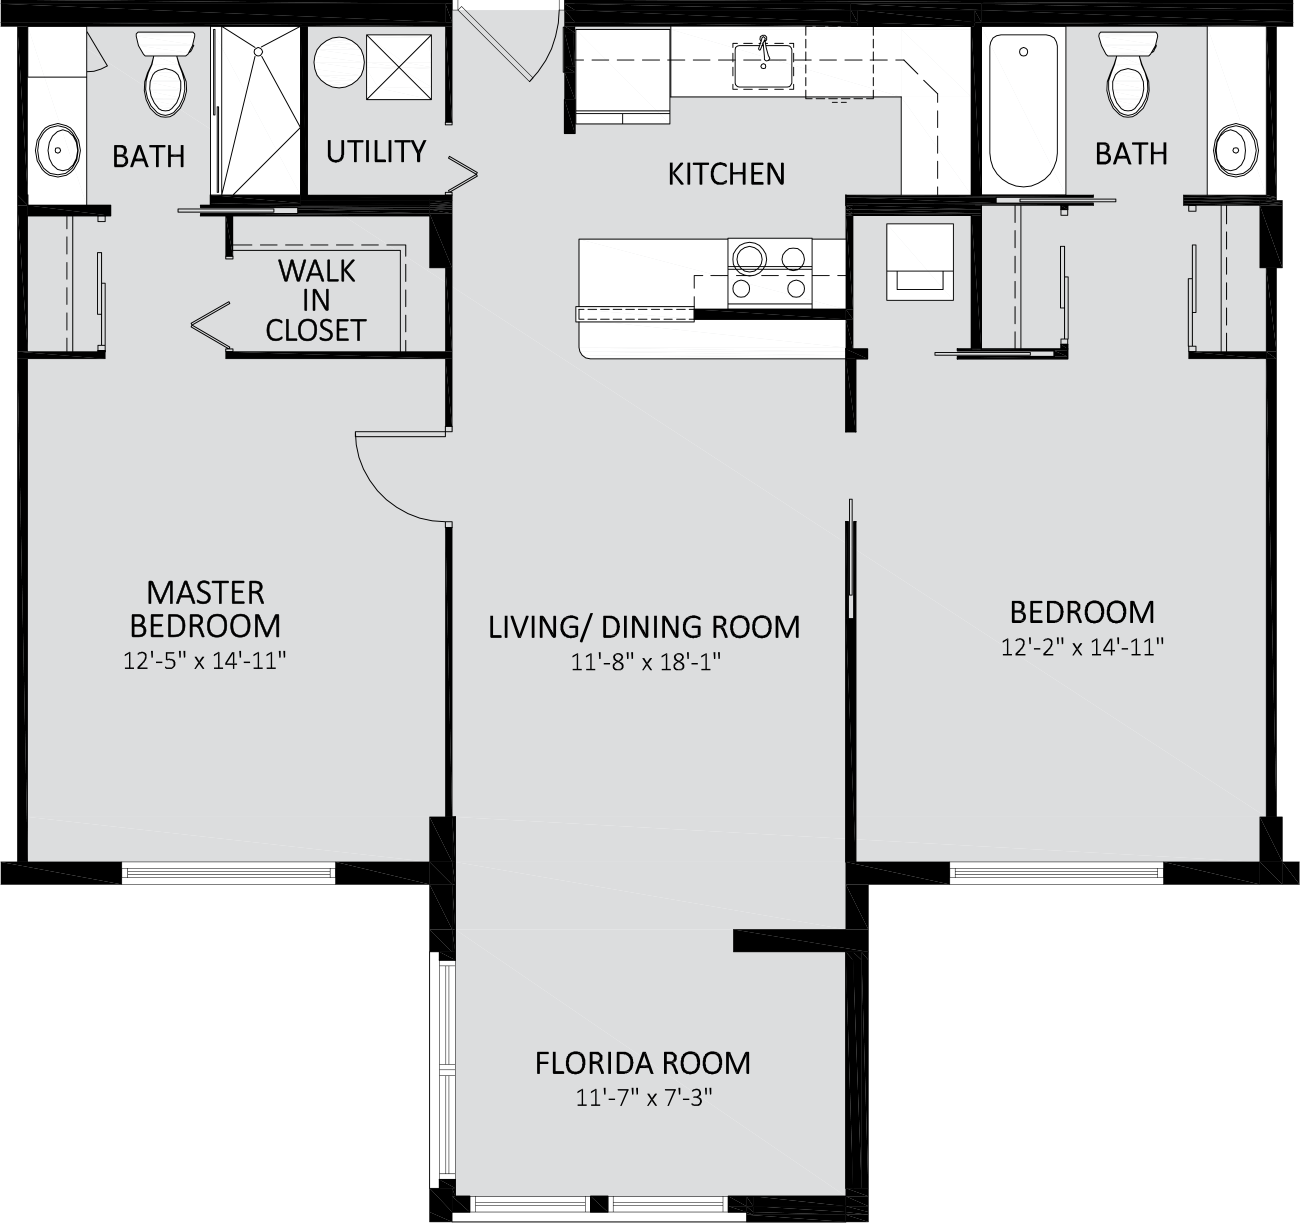 Ocean Breeze Traditional Two Bedroom A Building 1025 Sq Ft.png